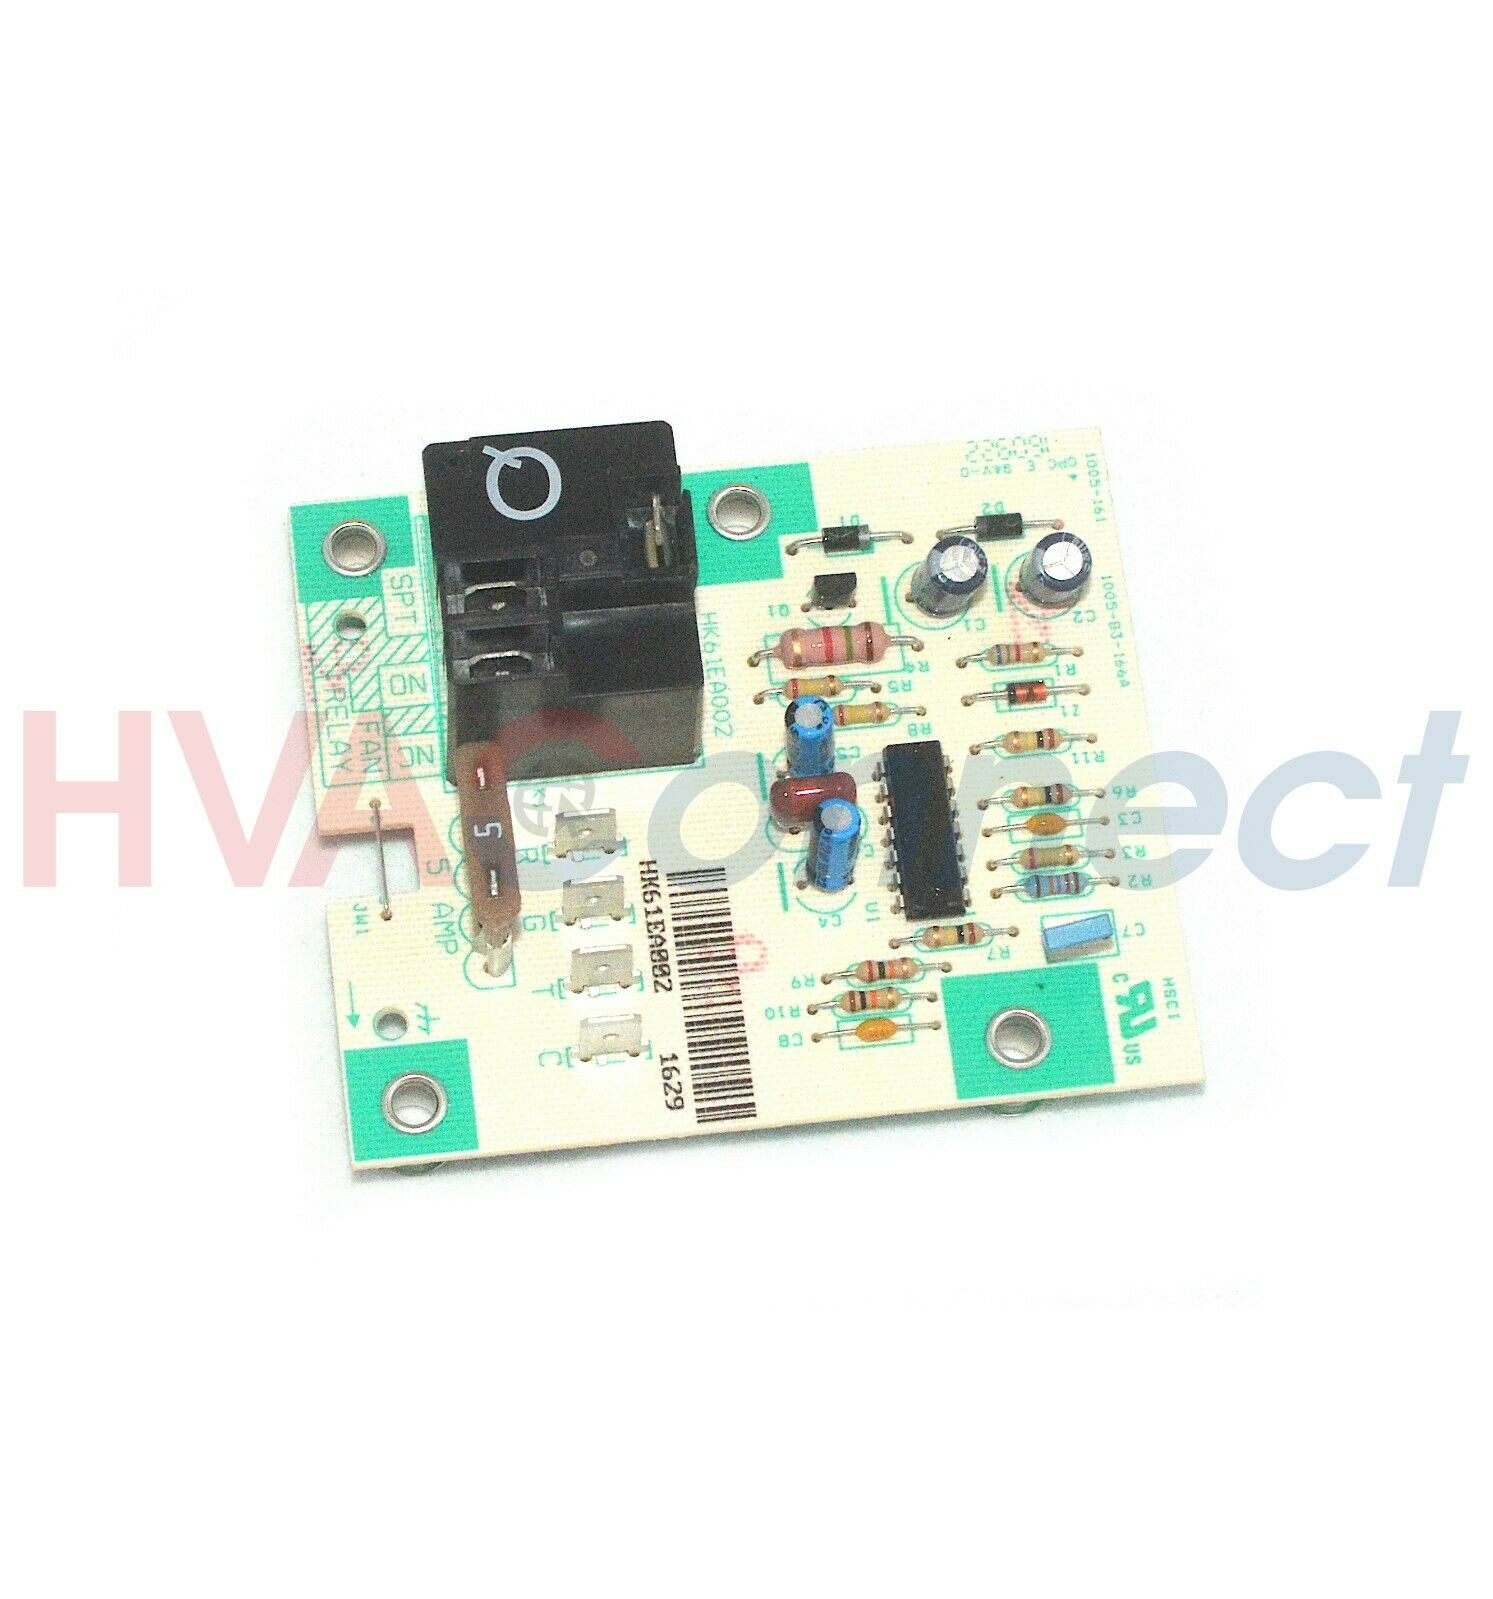 Honeywell Furnace Fan Control Board 1005 83 161a 2829 Picclick Oem Is20205 6117 Air Pressure Switch Hk06wc100 Ebay 1 Of 2only 3 Available